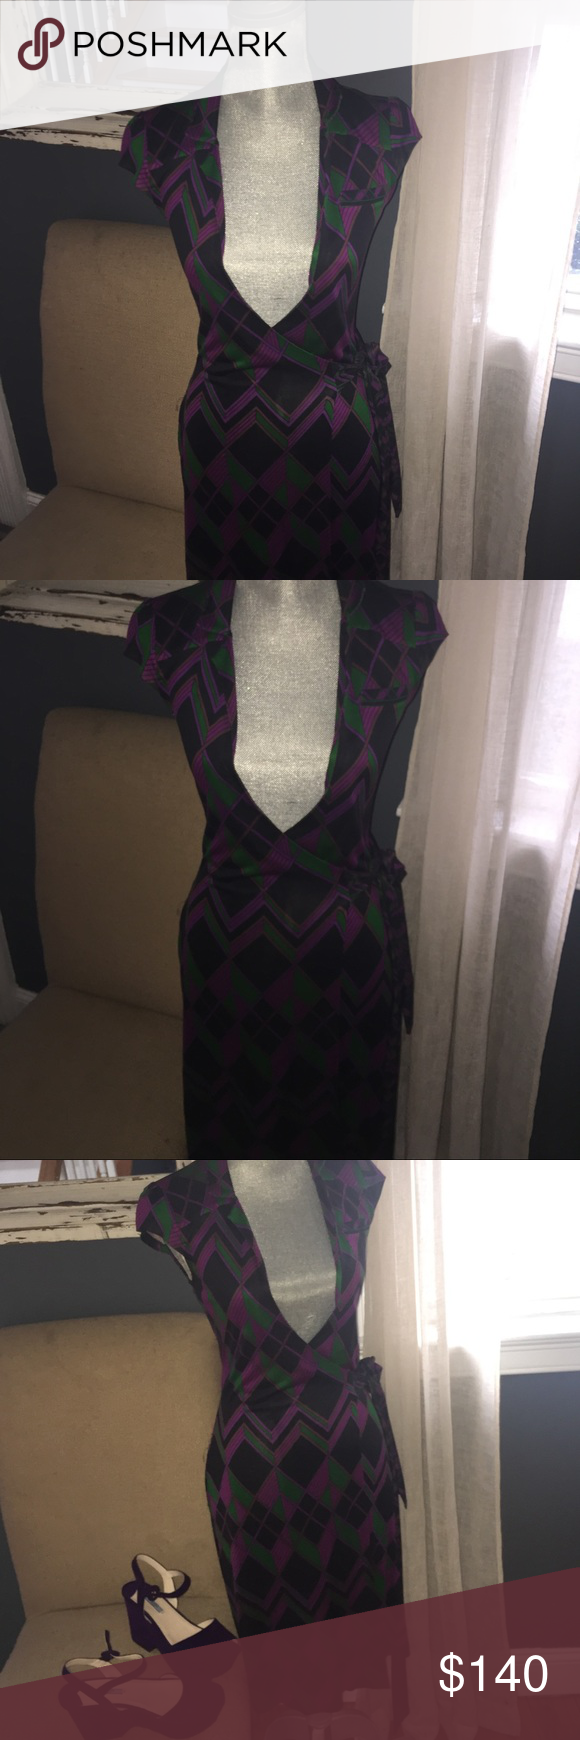 DVF ICONIC WRAP DRESS Nobody does a better WRAP dress than Diane Von Furstenberg!! Gorgeous jewel tone colors of purple , black and green with cutesy cap sleeves,looks amazing with my  purple suede Prada platforms ! Only worn 1 time ! Will give u a killer bundle deal if u purchase both (see Prada shoes in separate listing ) Diane von Furstenberg Dresses Midi